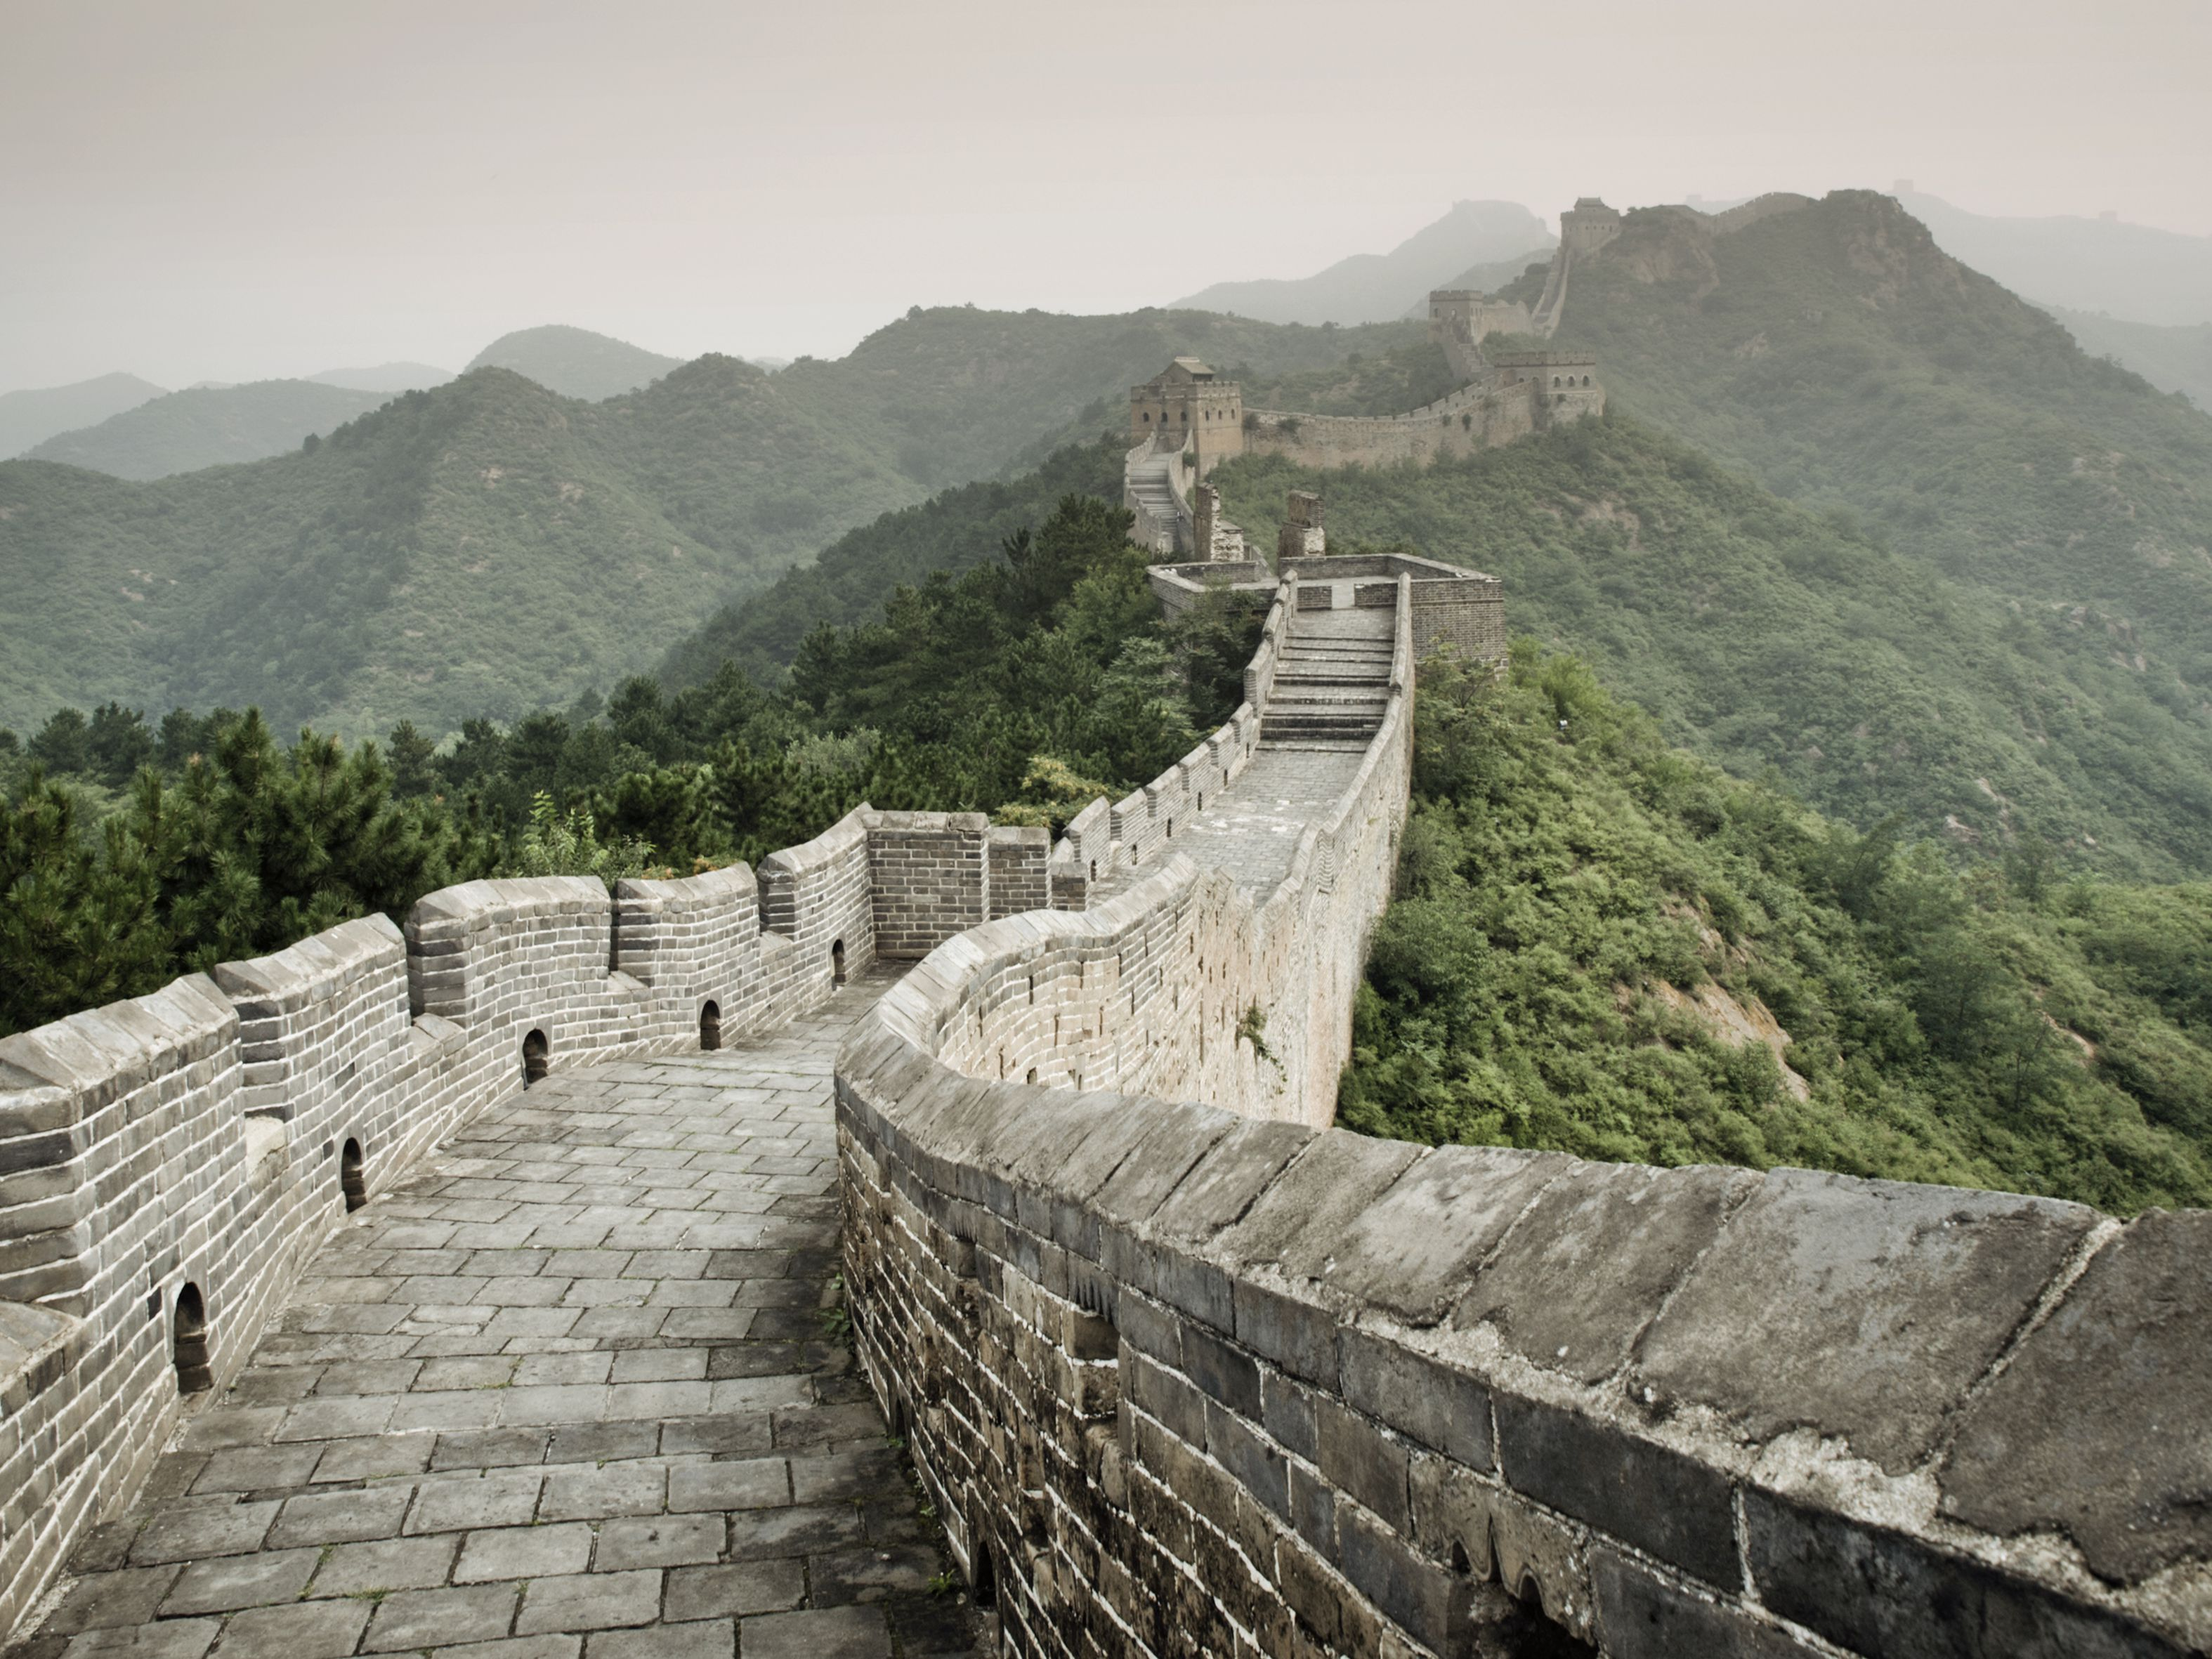 china view of great wall of china a5f9b5815d9a1dea3